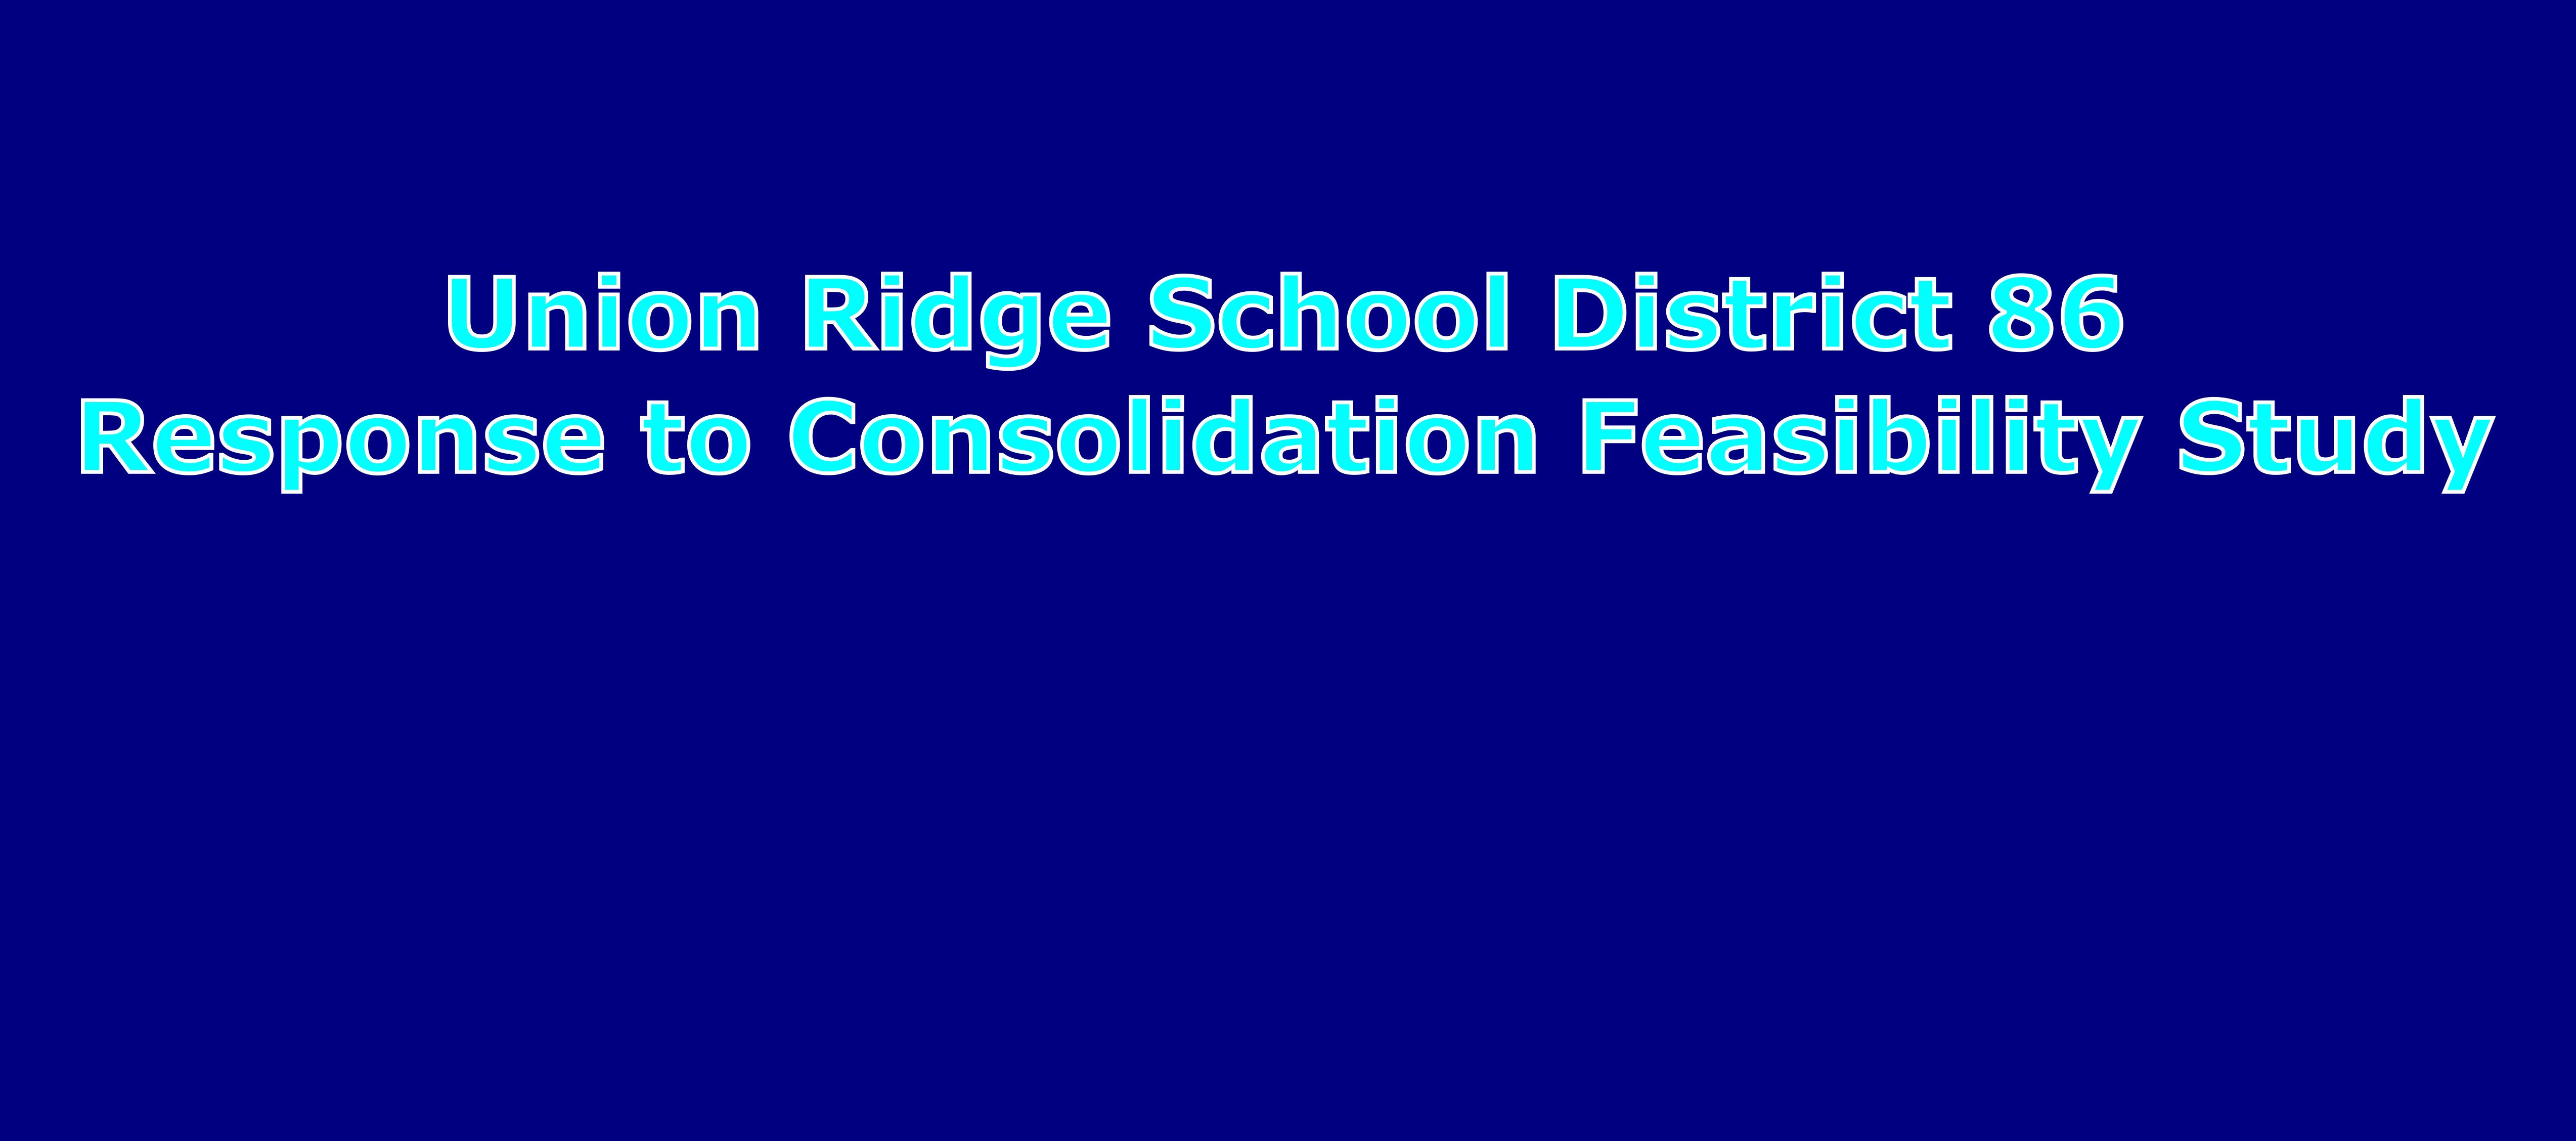 Response to Consolidation Feasibility Study